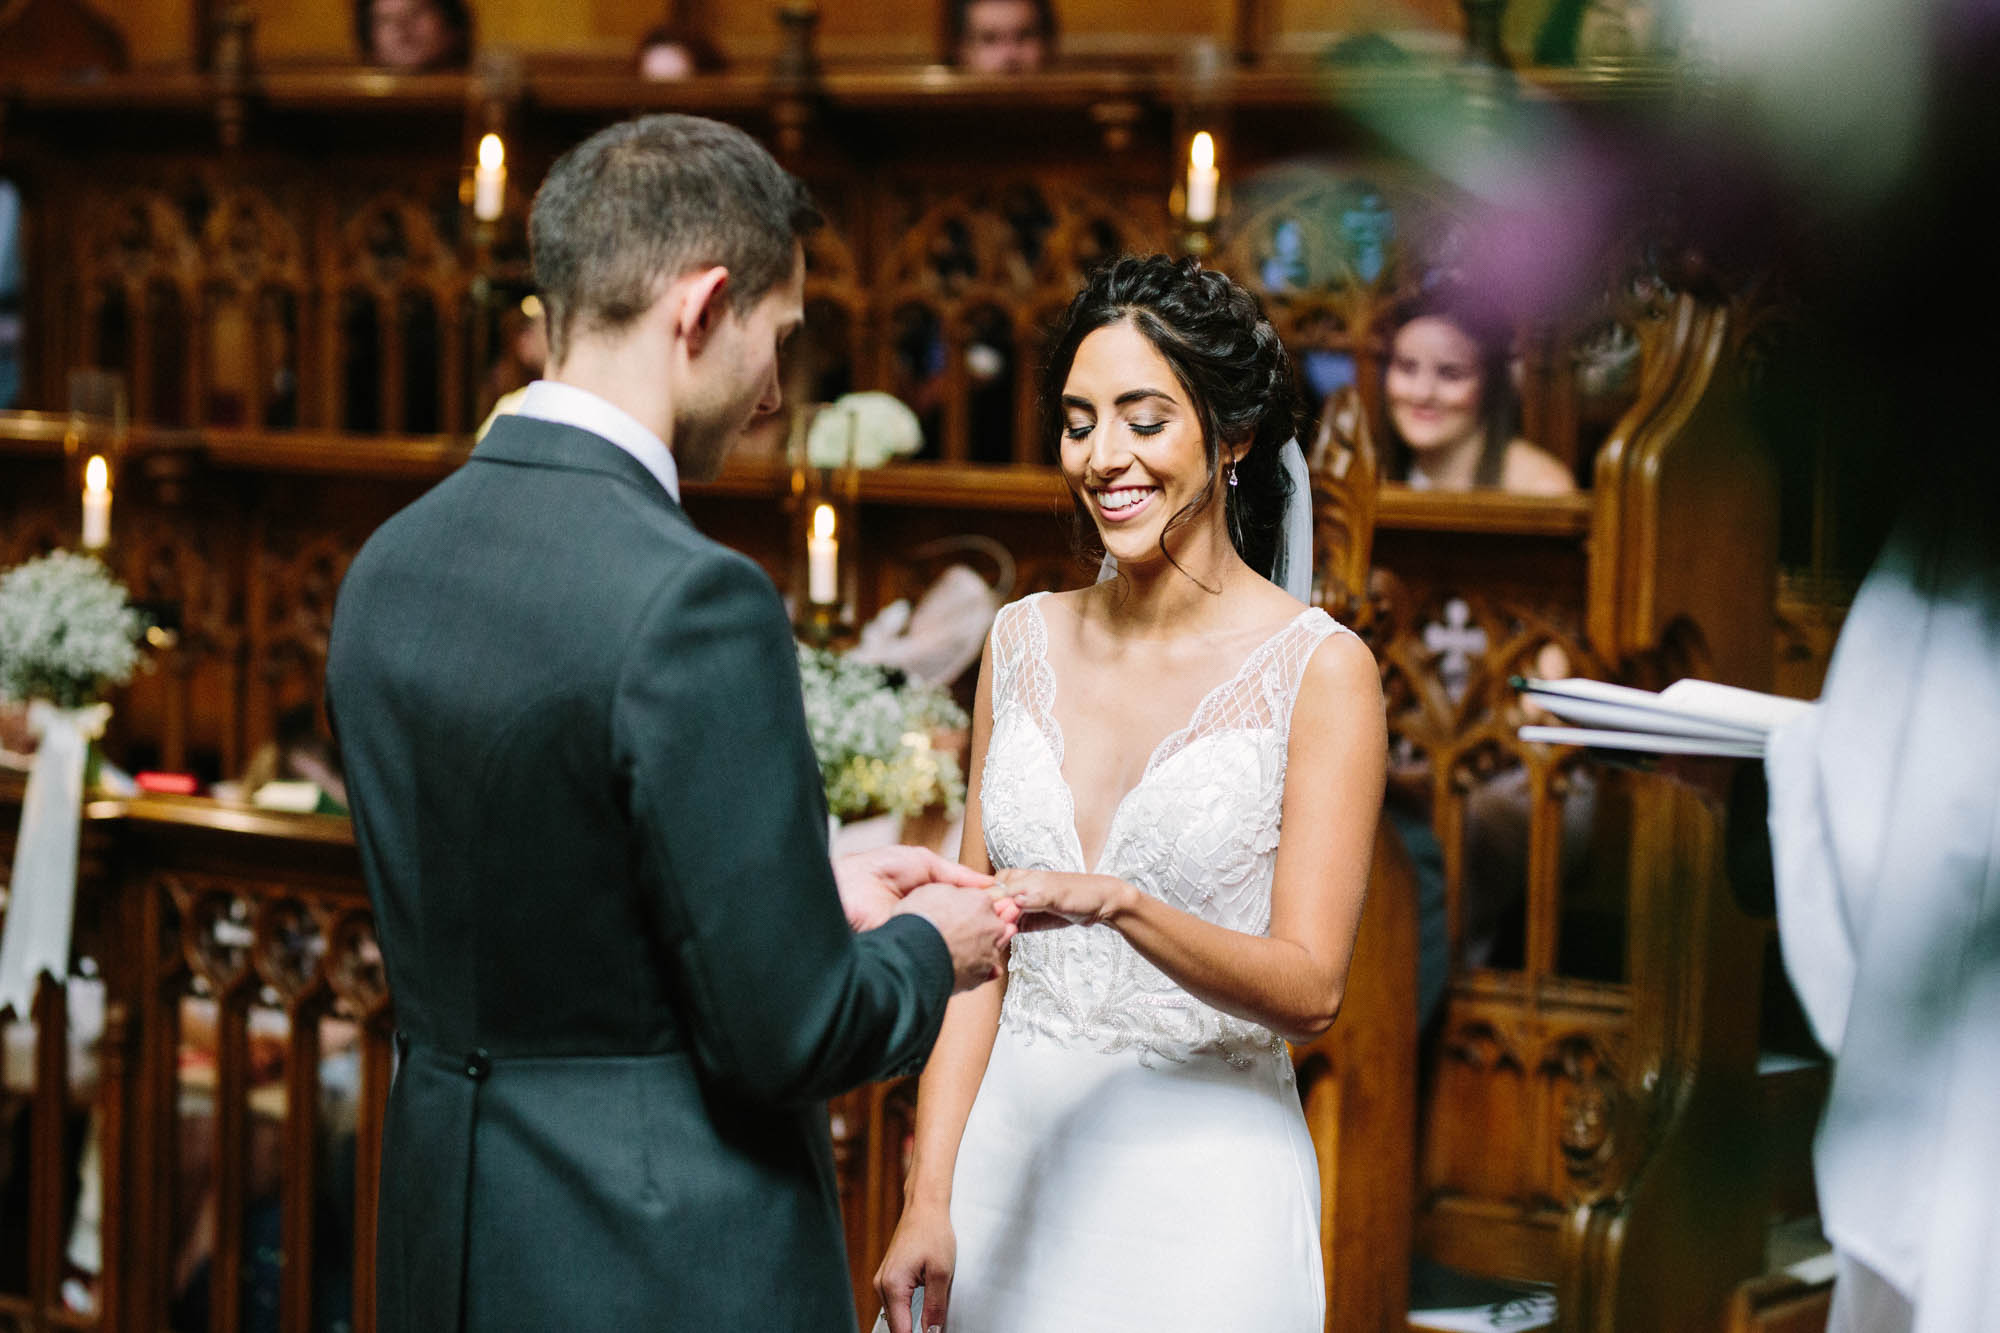 Bride and groom exchanging rings during wedding ceremony in Magdalen College Oxford Chapel